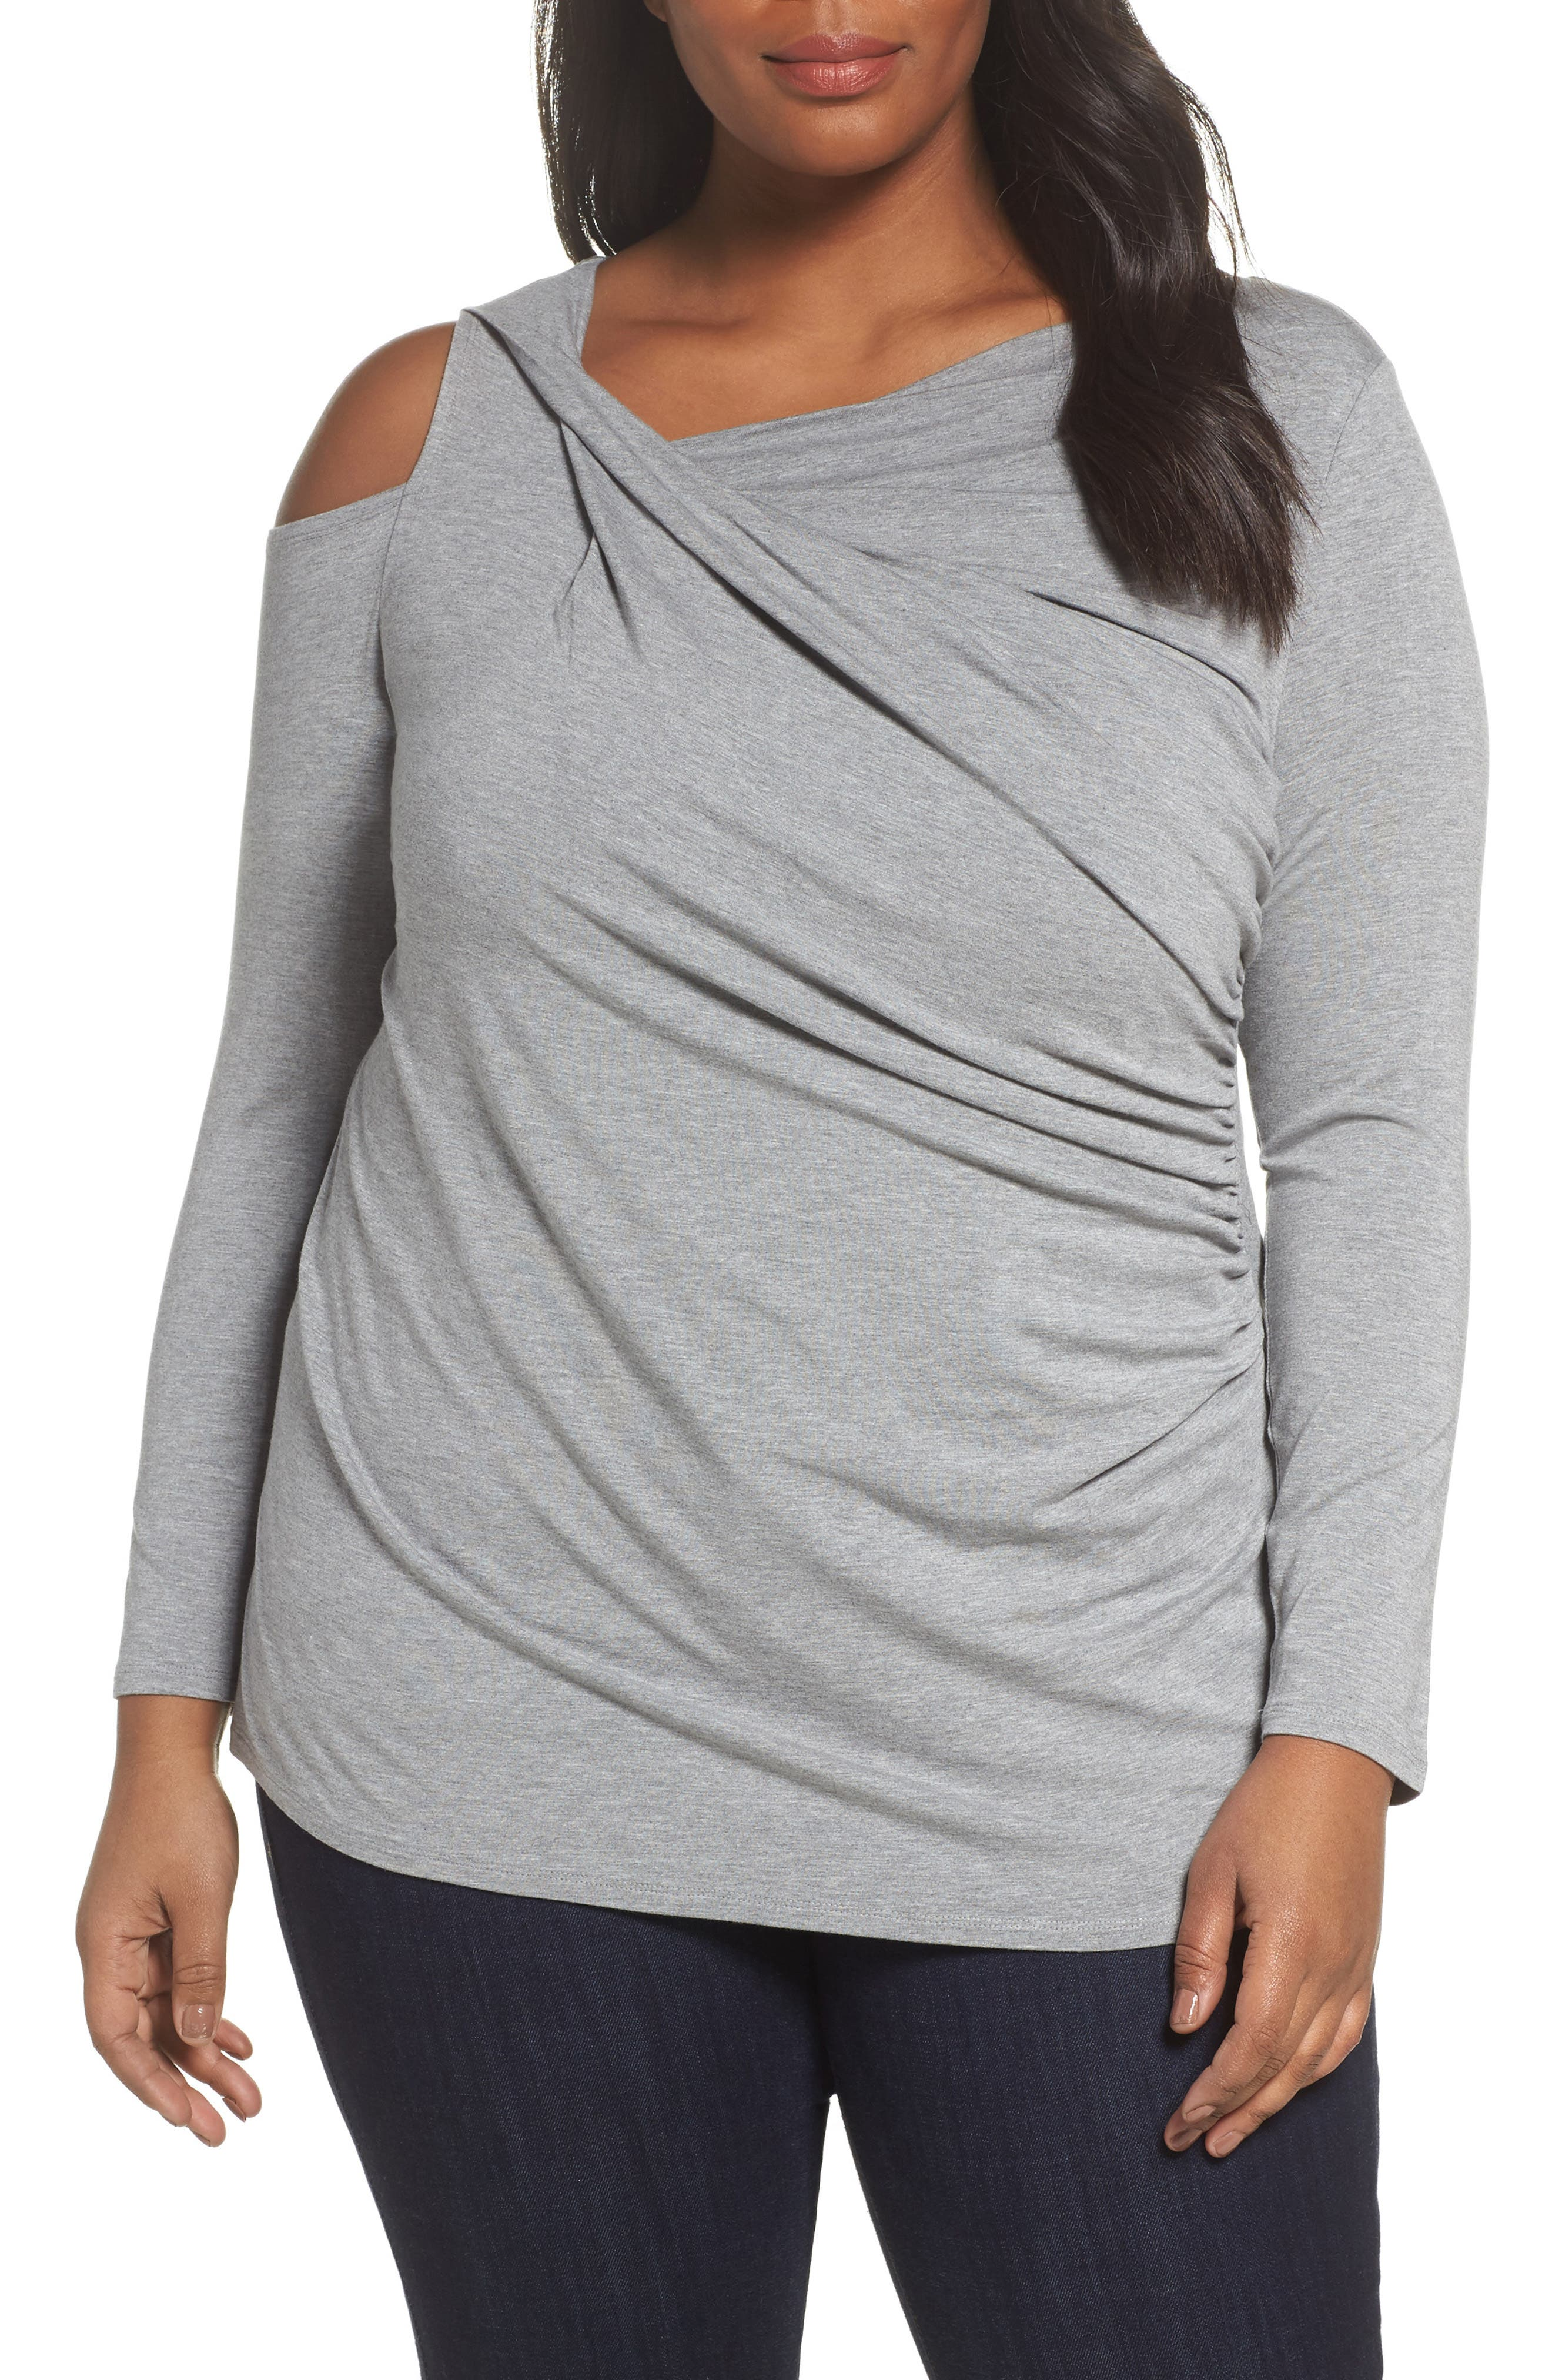 Main Image - Vince Camuto Twisted Cold Shoulder Top (Plus Size)